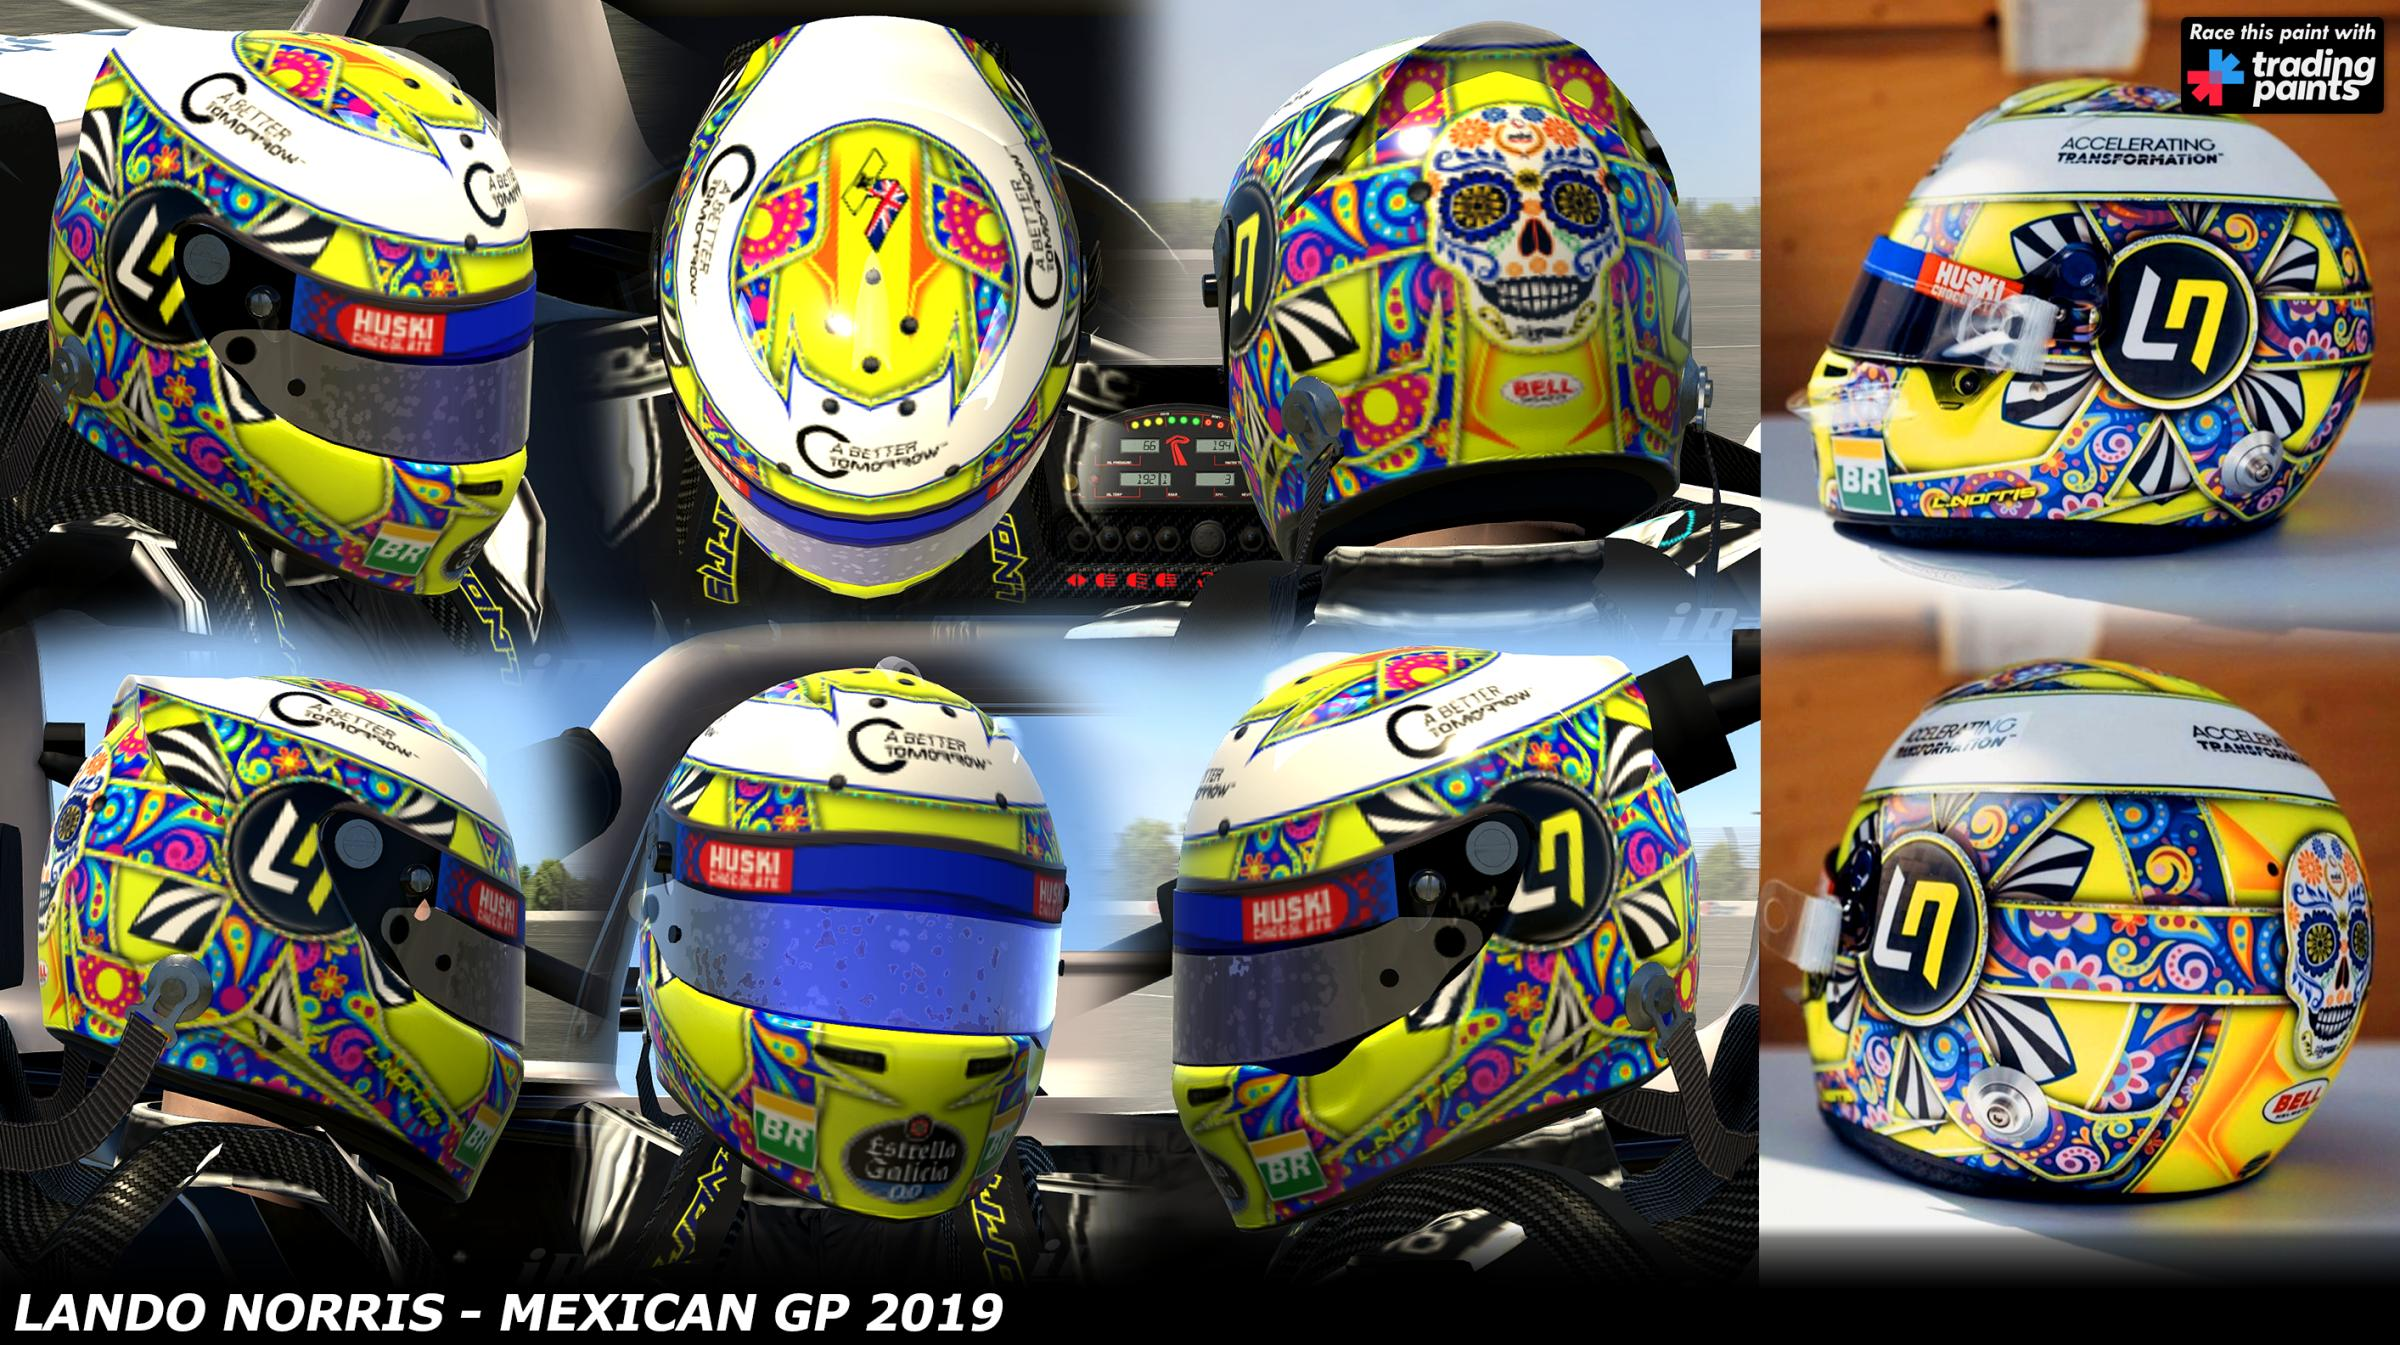 Preview of Lando Norris - Mexican GP 2019 by George Simmons